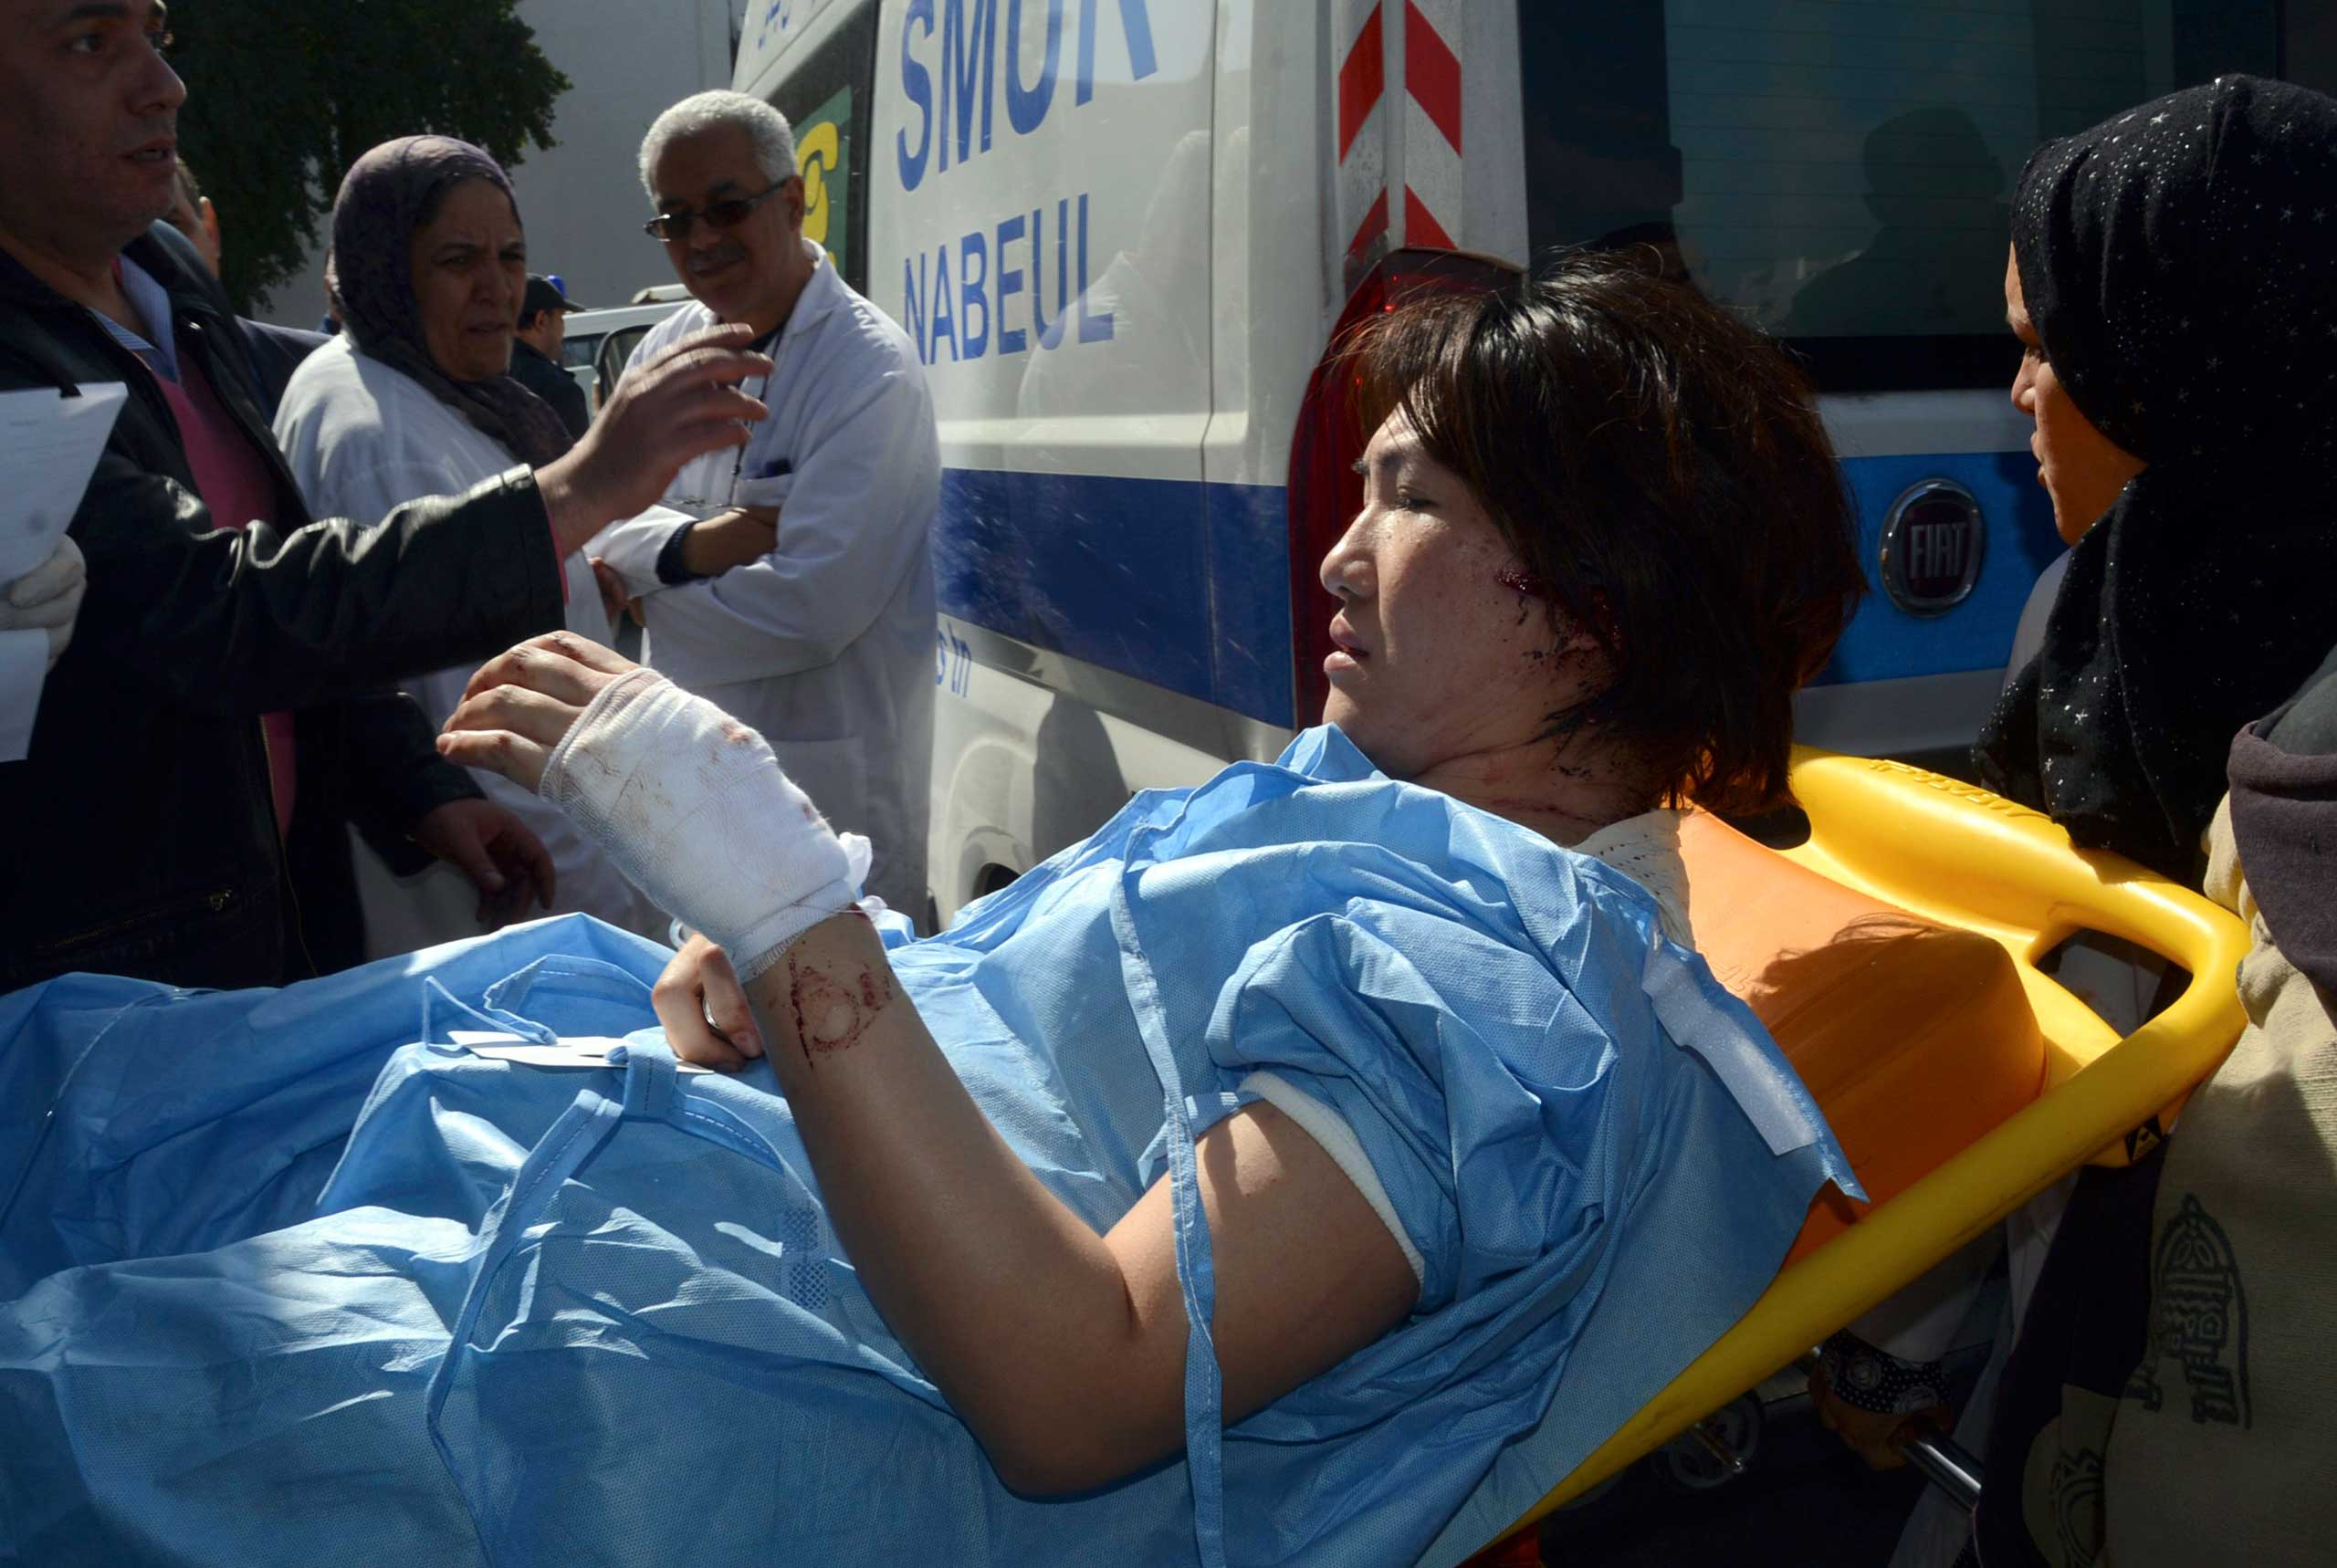 A victim arrives at the Charles Nicoles hospital, March 18, 2015 in Tunis.